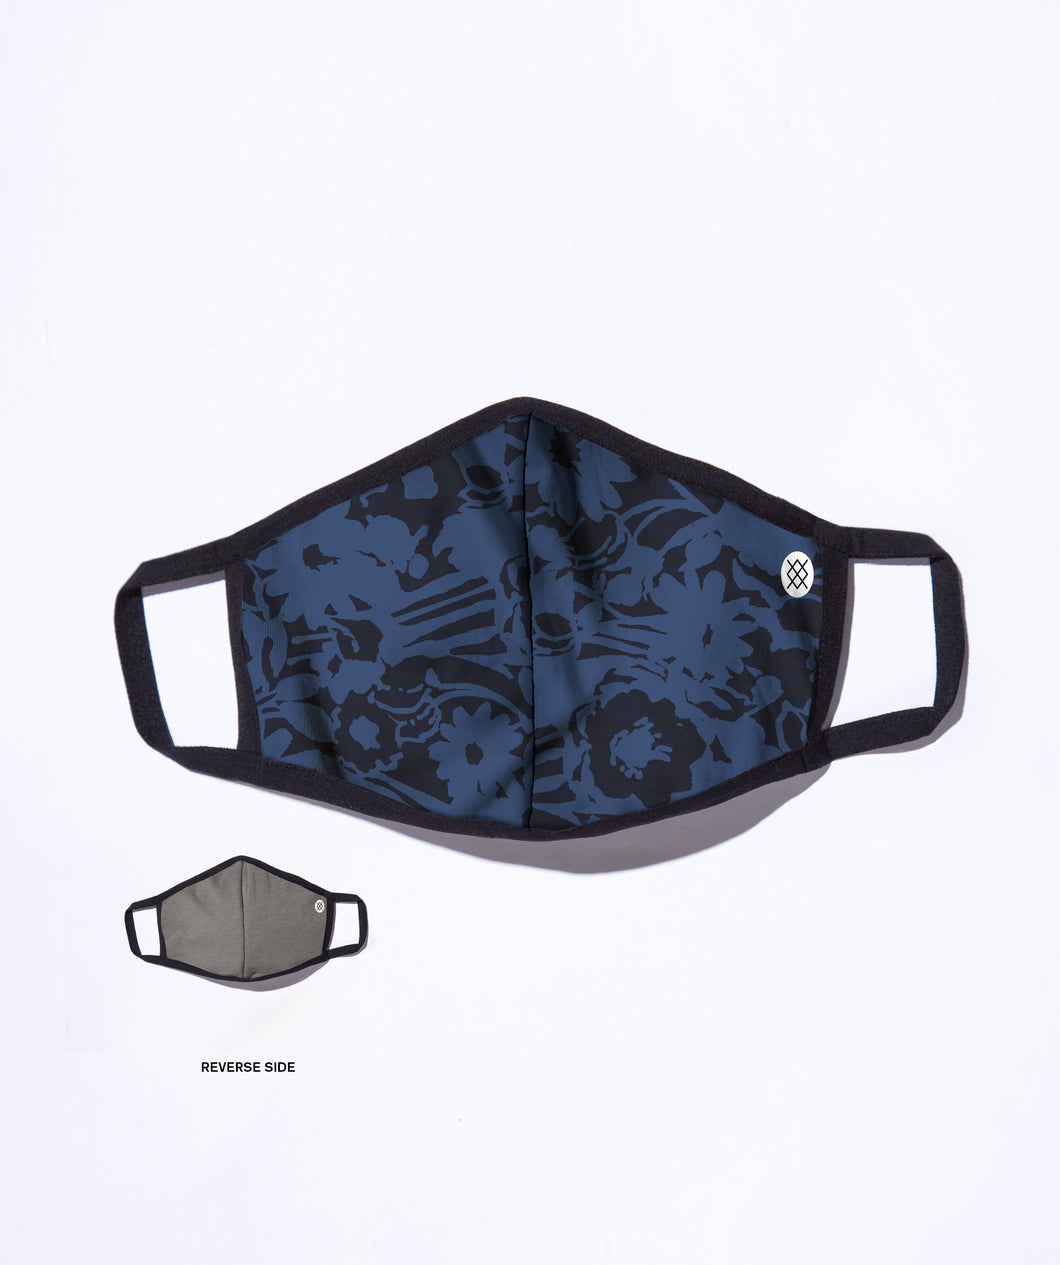 Stance Socks Botanic Mask Navy